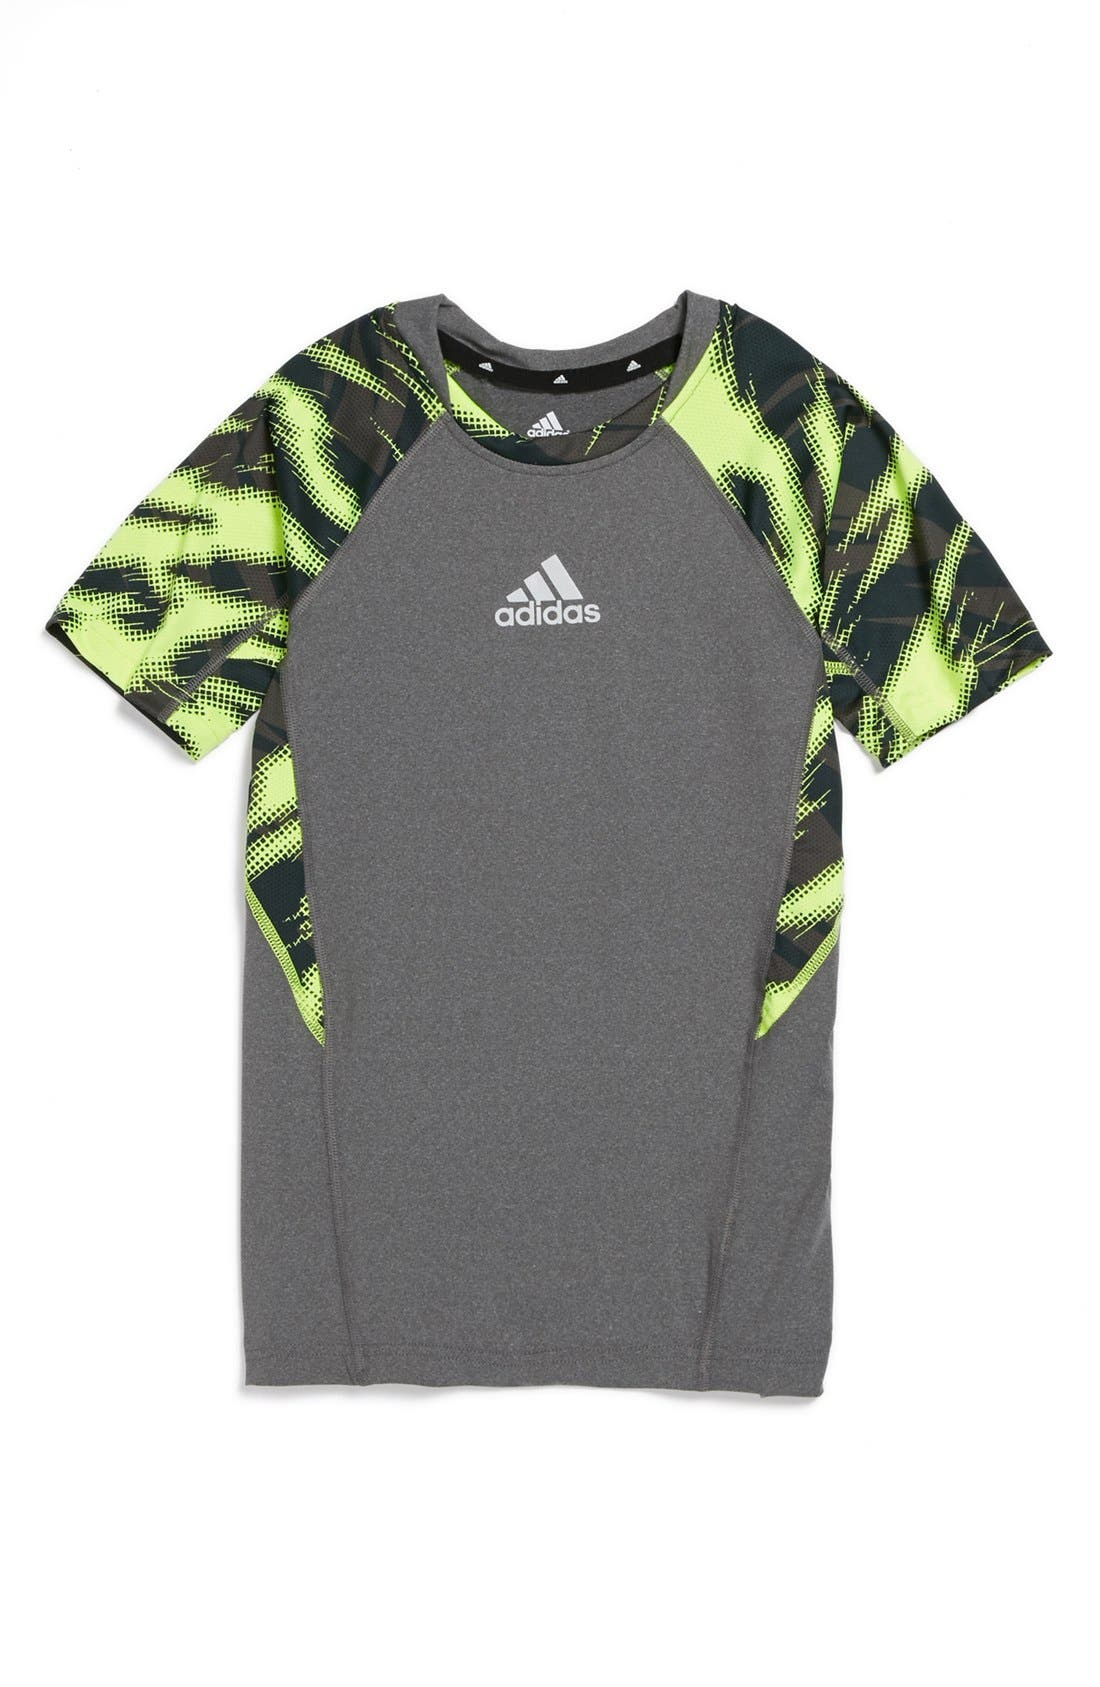 Main Image - adidas Tech Fit Performance T-Shirt (Big Boys)